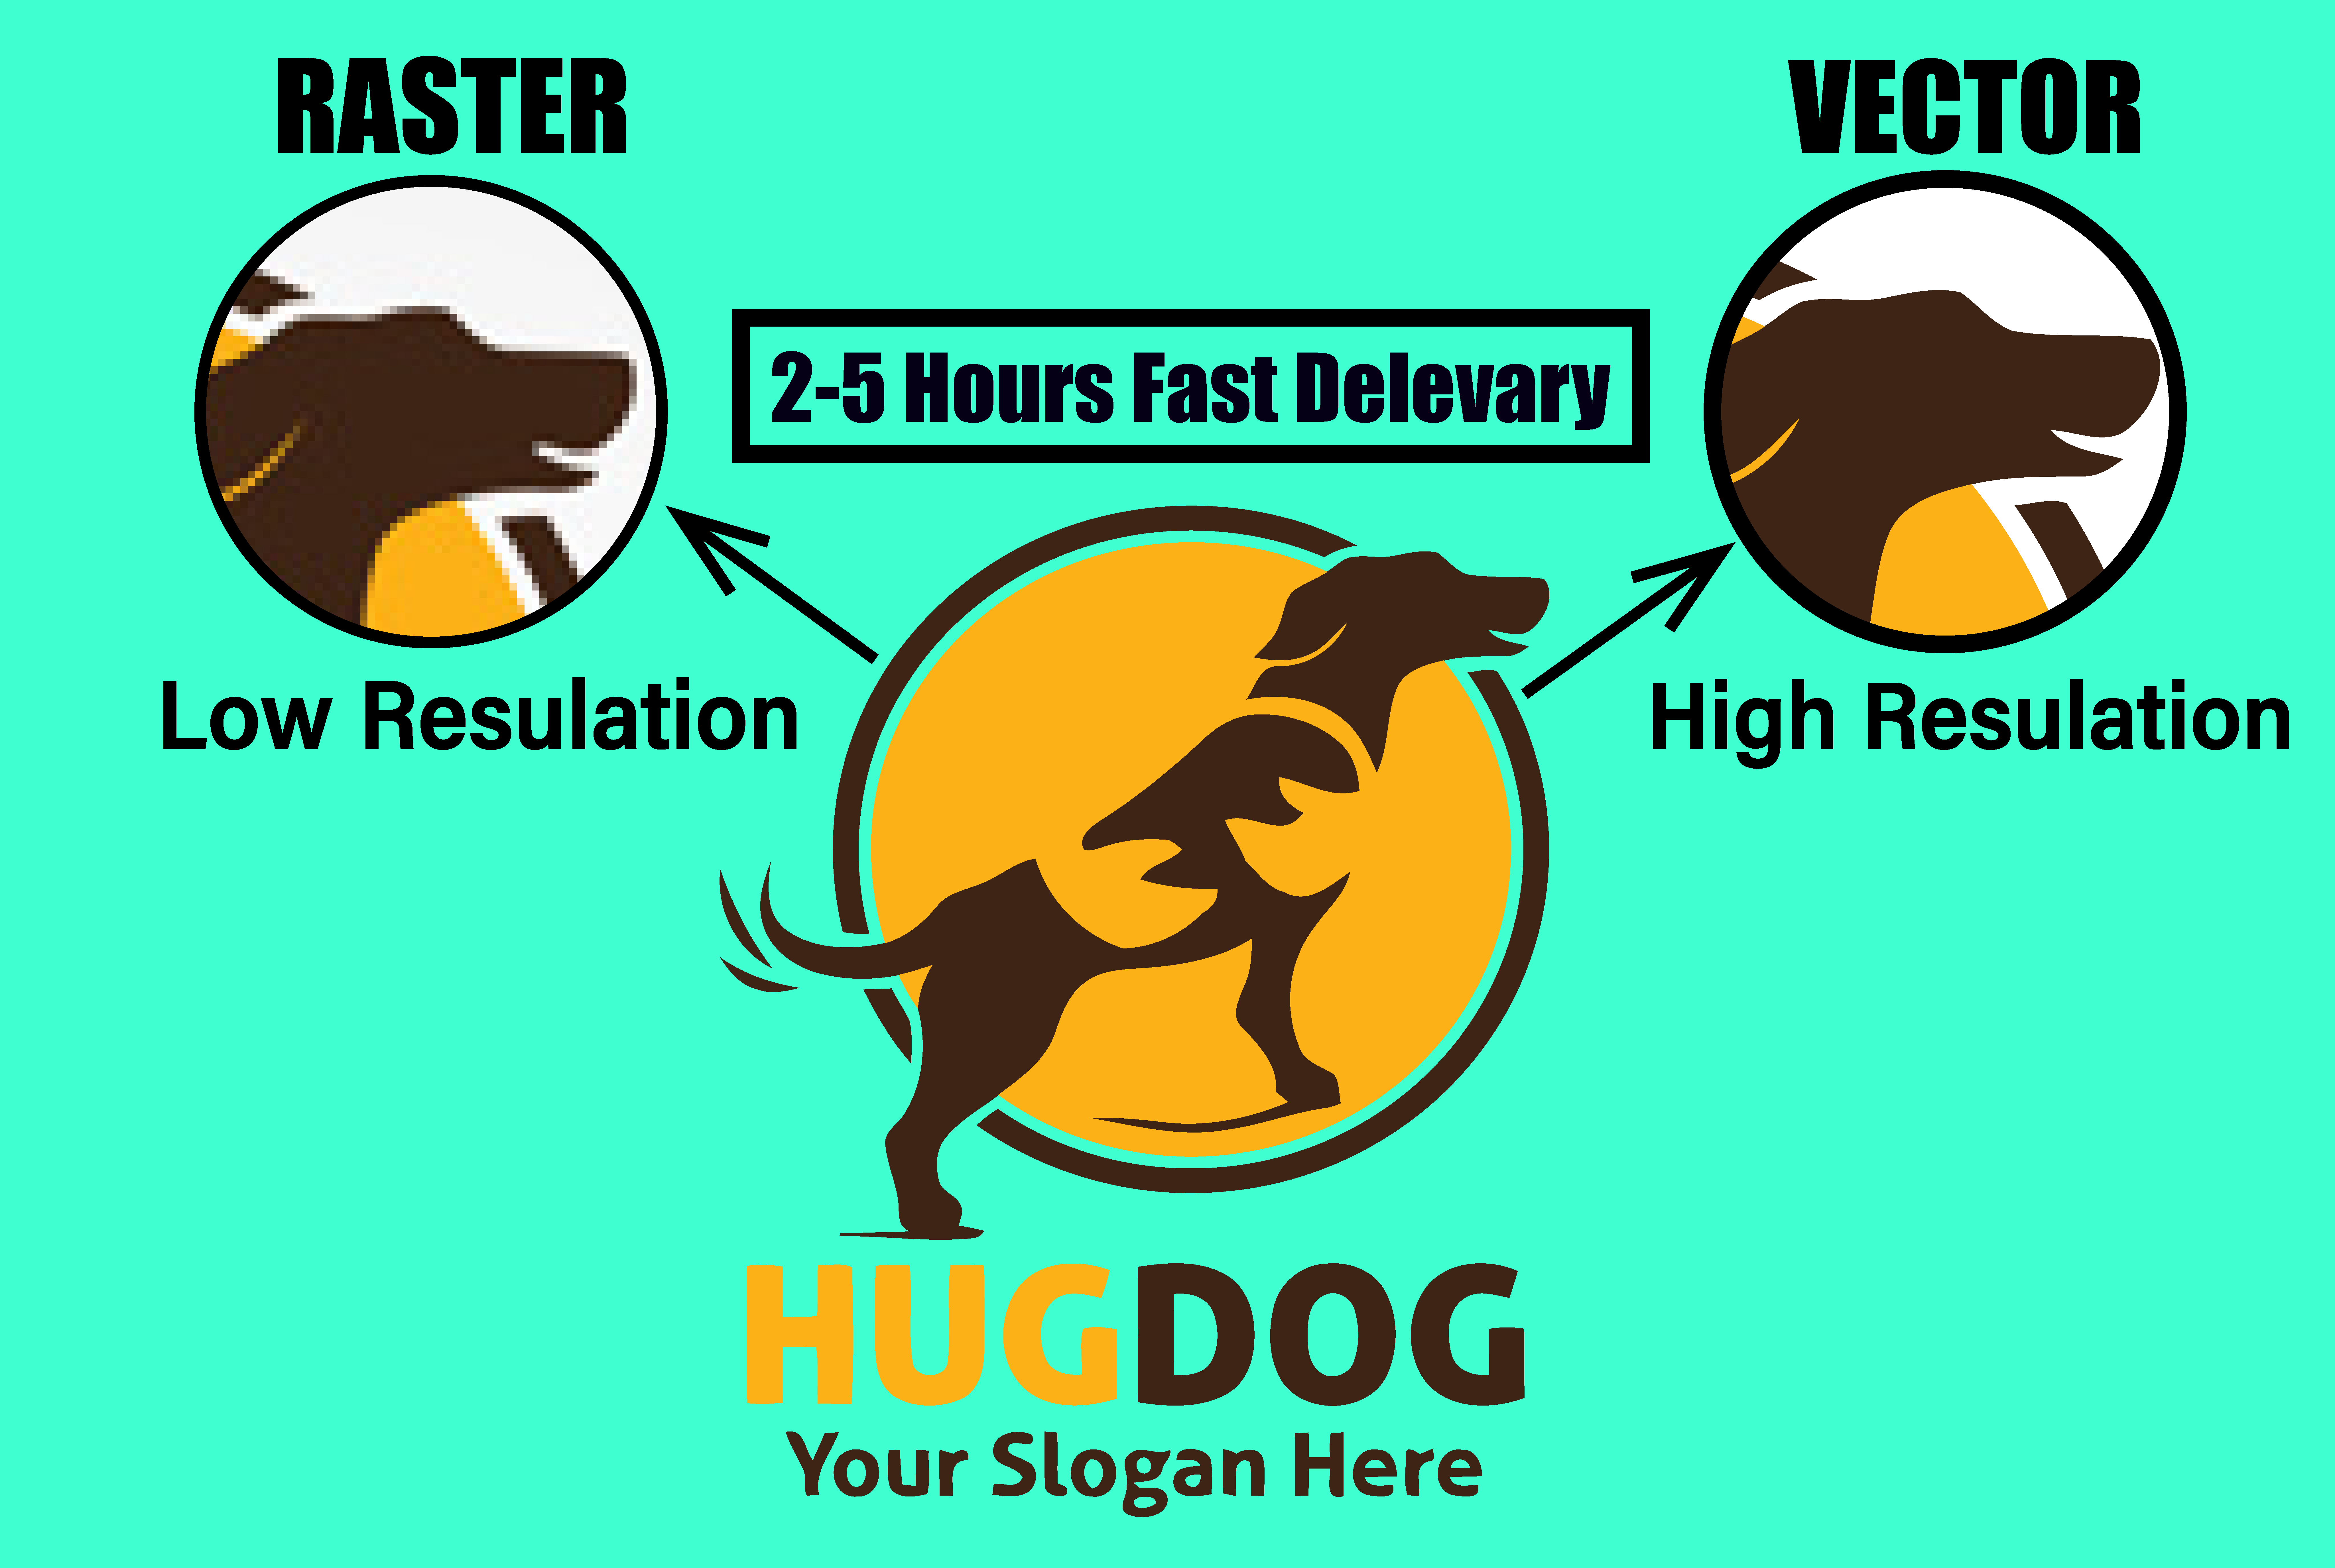 I will change your raster to vector logo